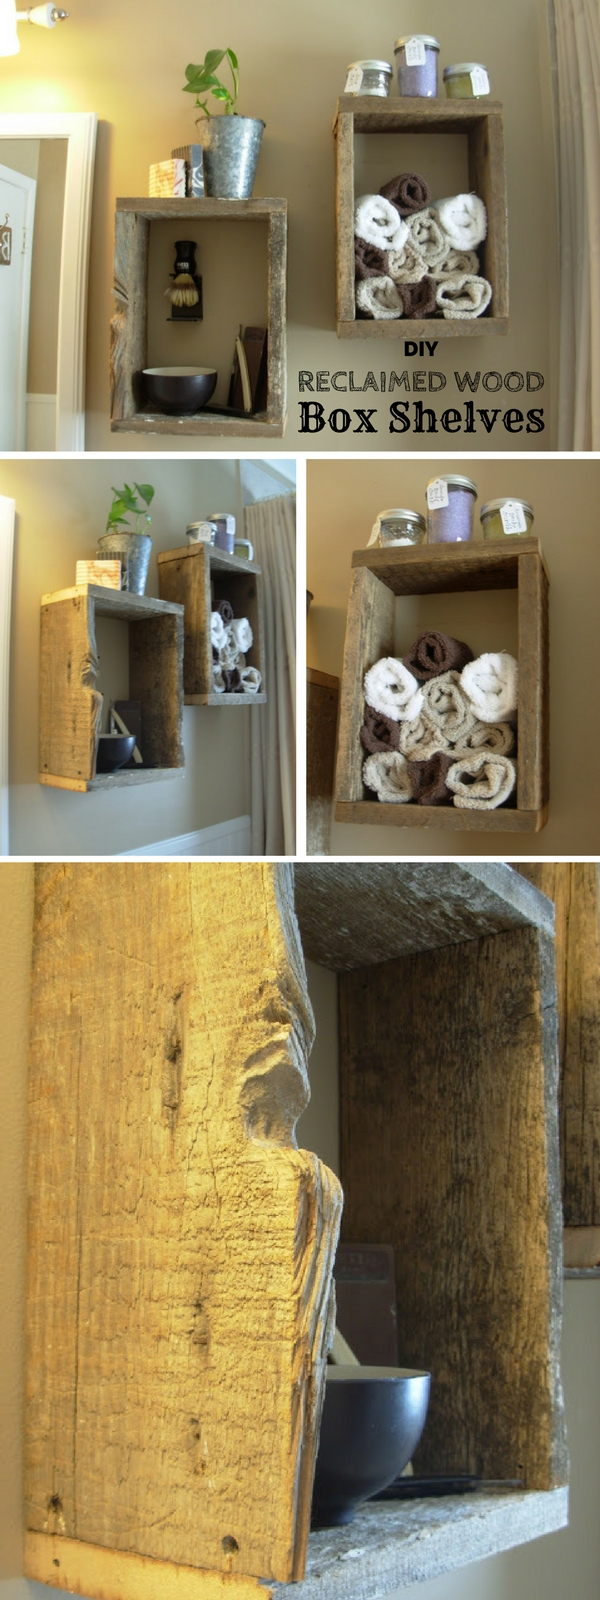 Check out this easy idea on how to build #DIY reclaimed wood box shelves for #rustic bathroom #homedecor #apartments #budget